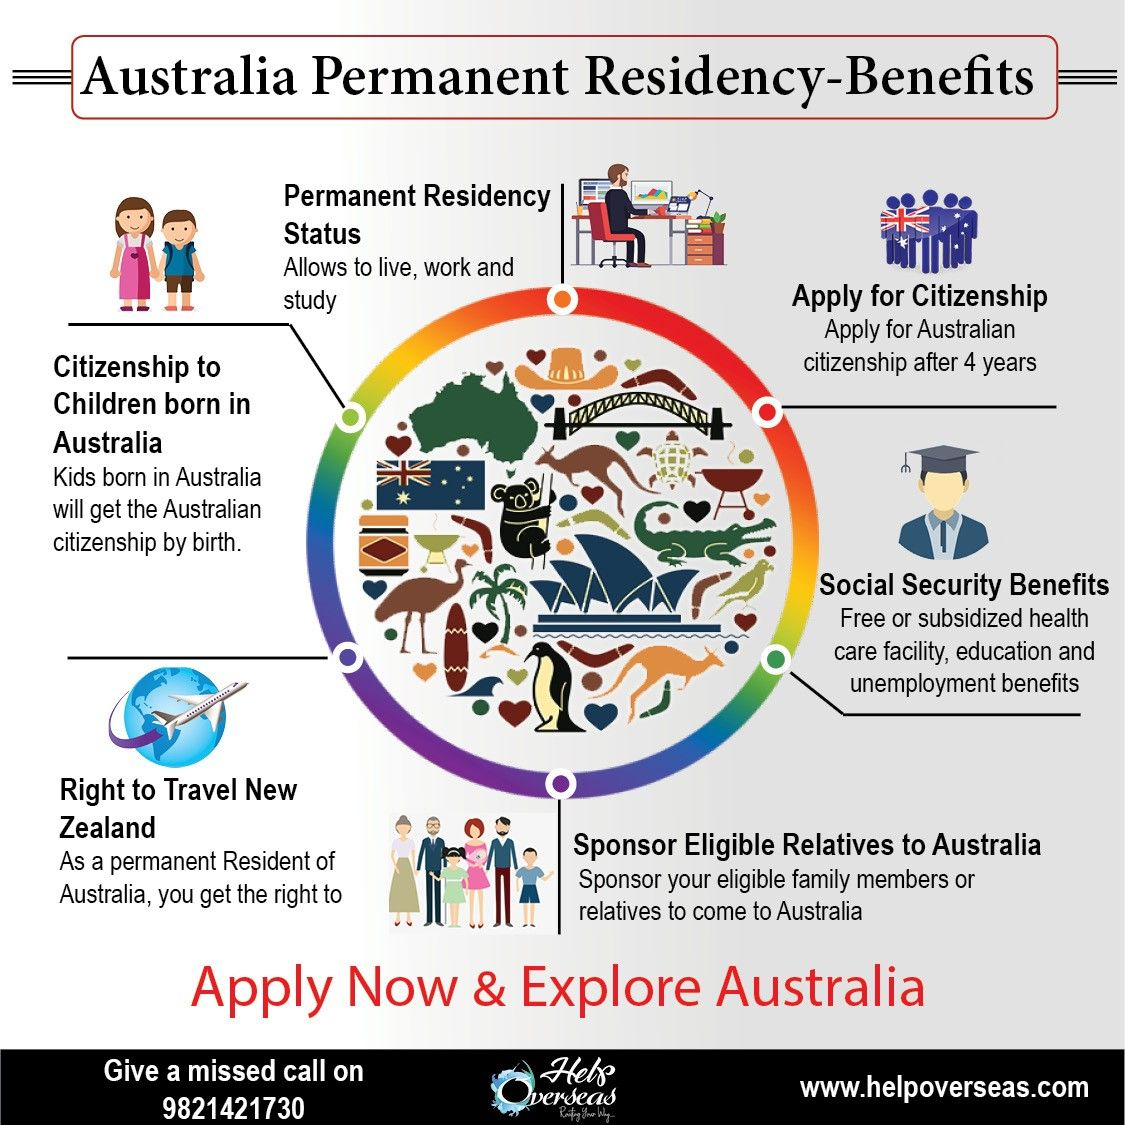 Contact helpoverseas for more details Australia